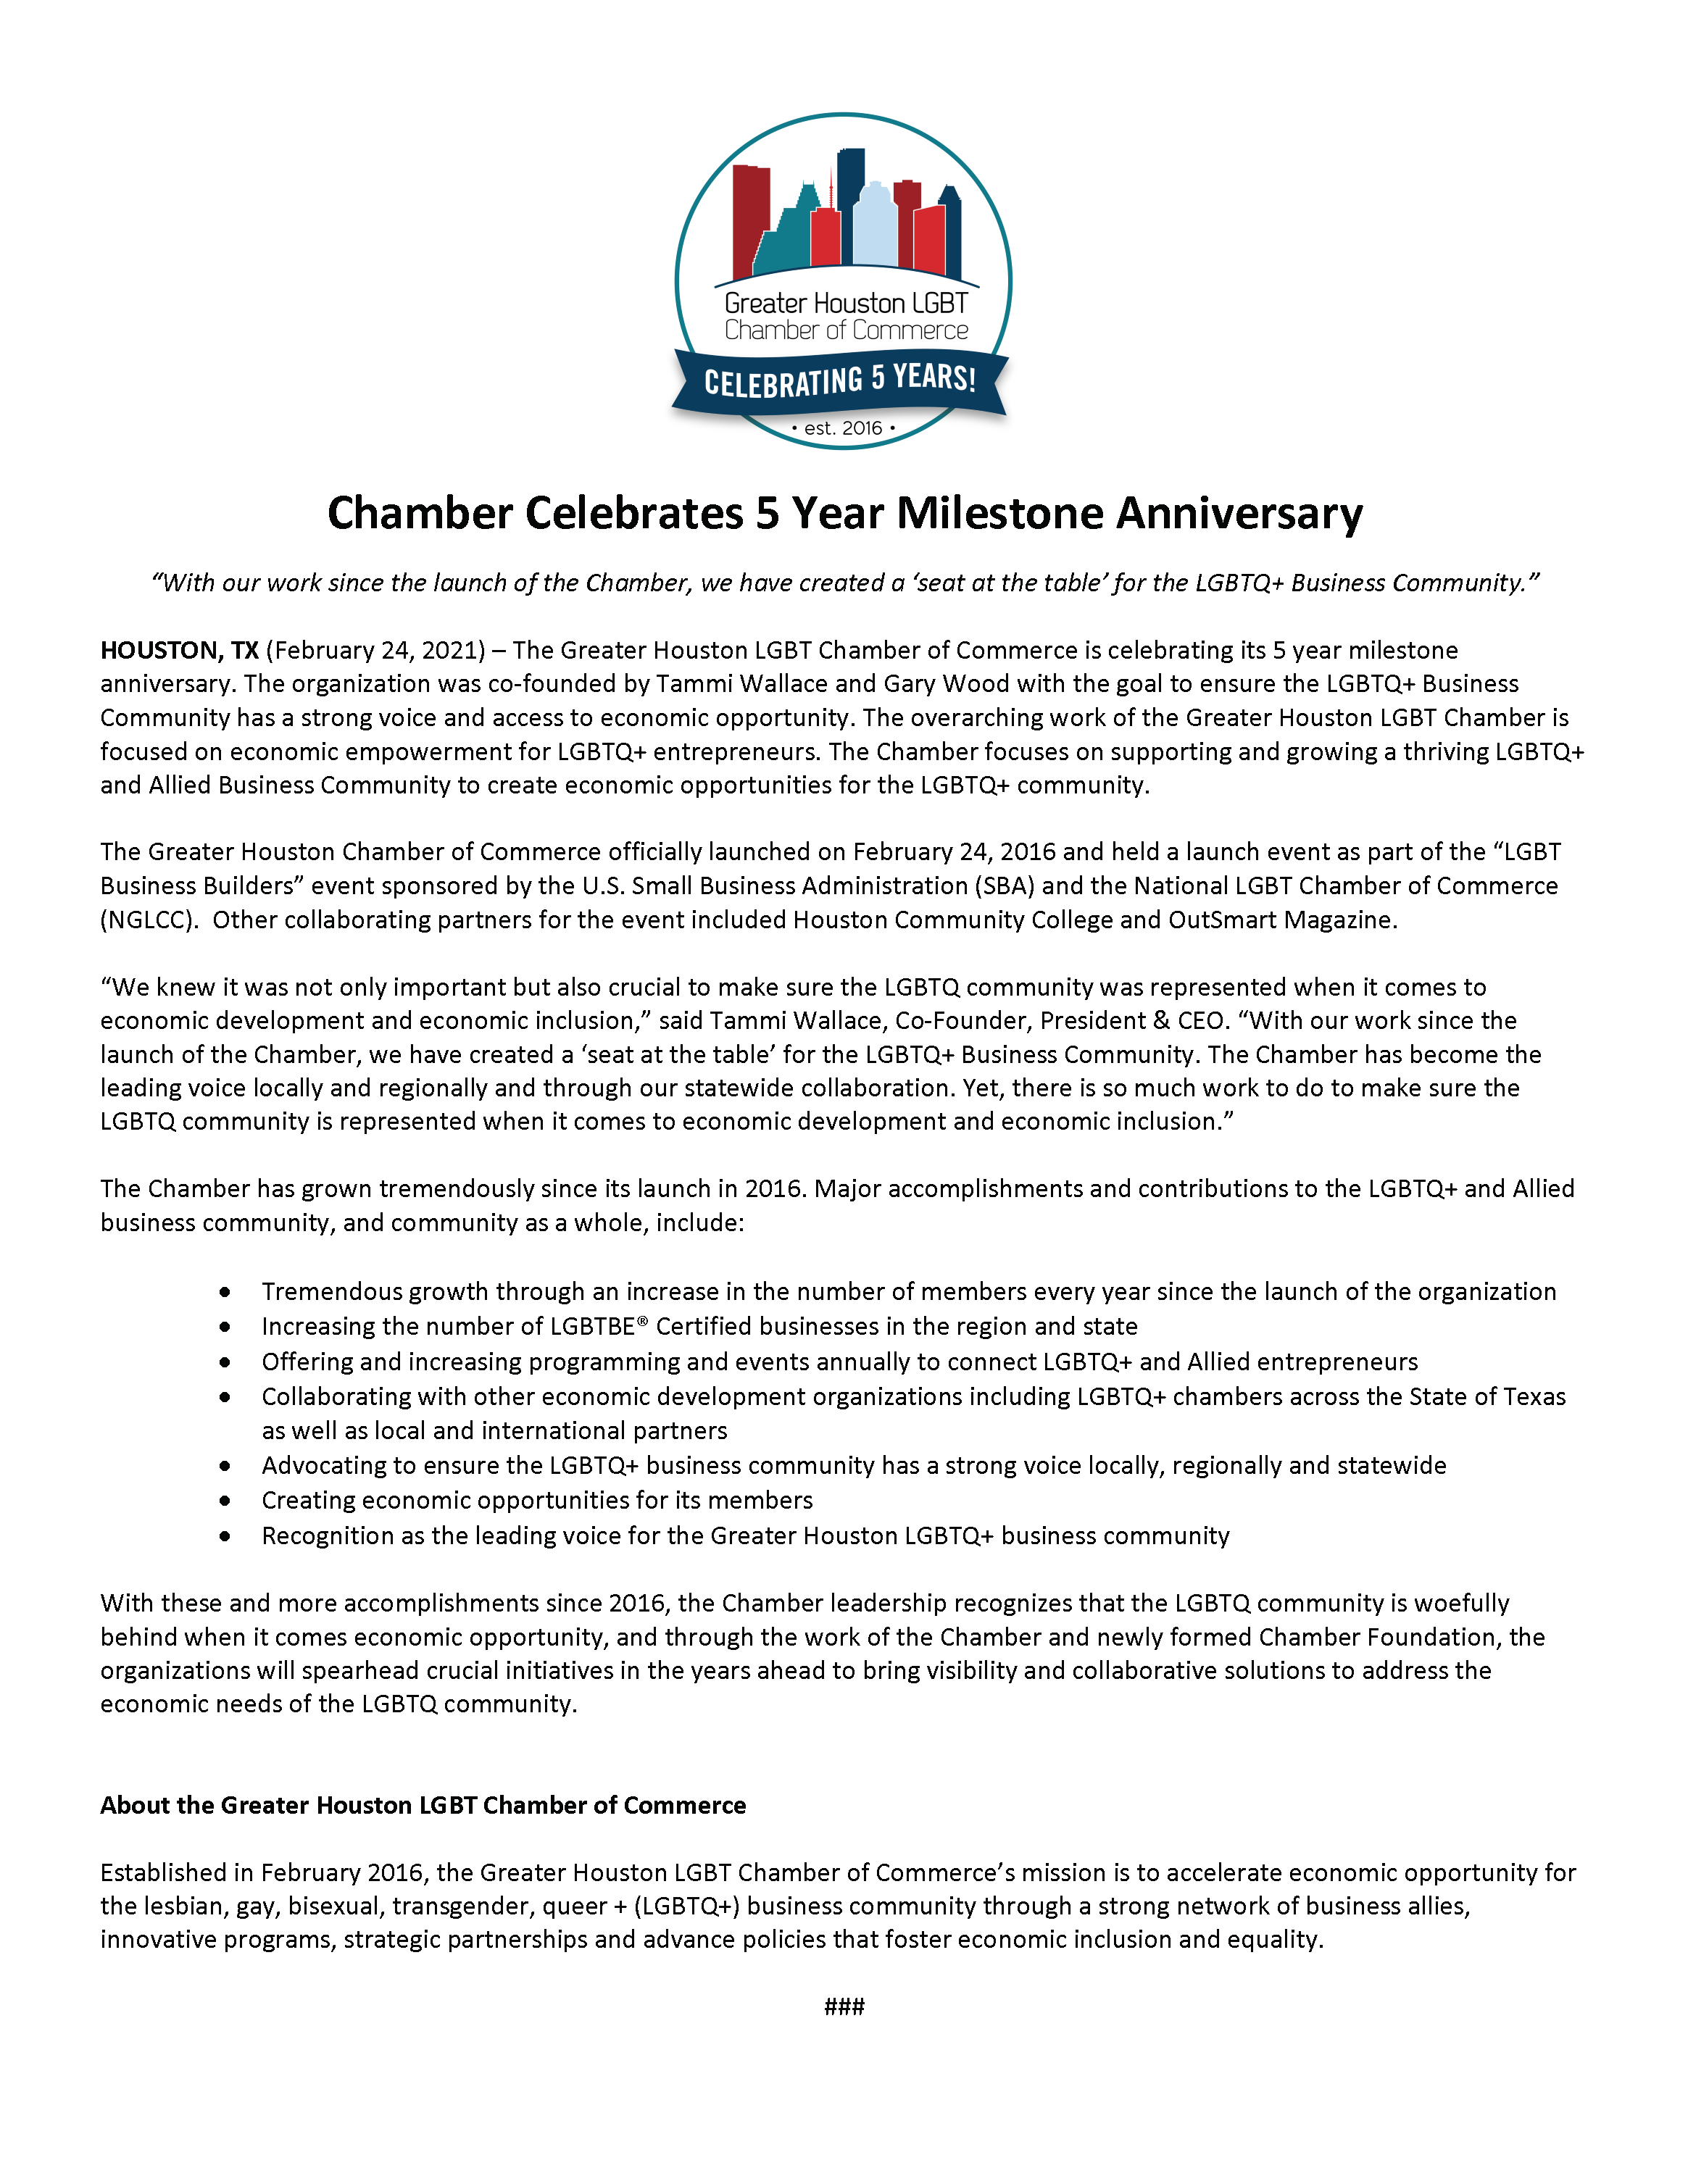 Greater Houston LGBT Chamber 5 Year Anniversary - Media Release ONE PAGE